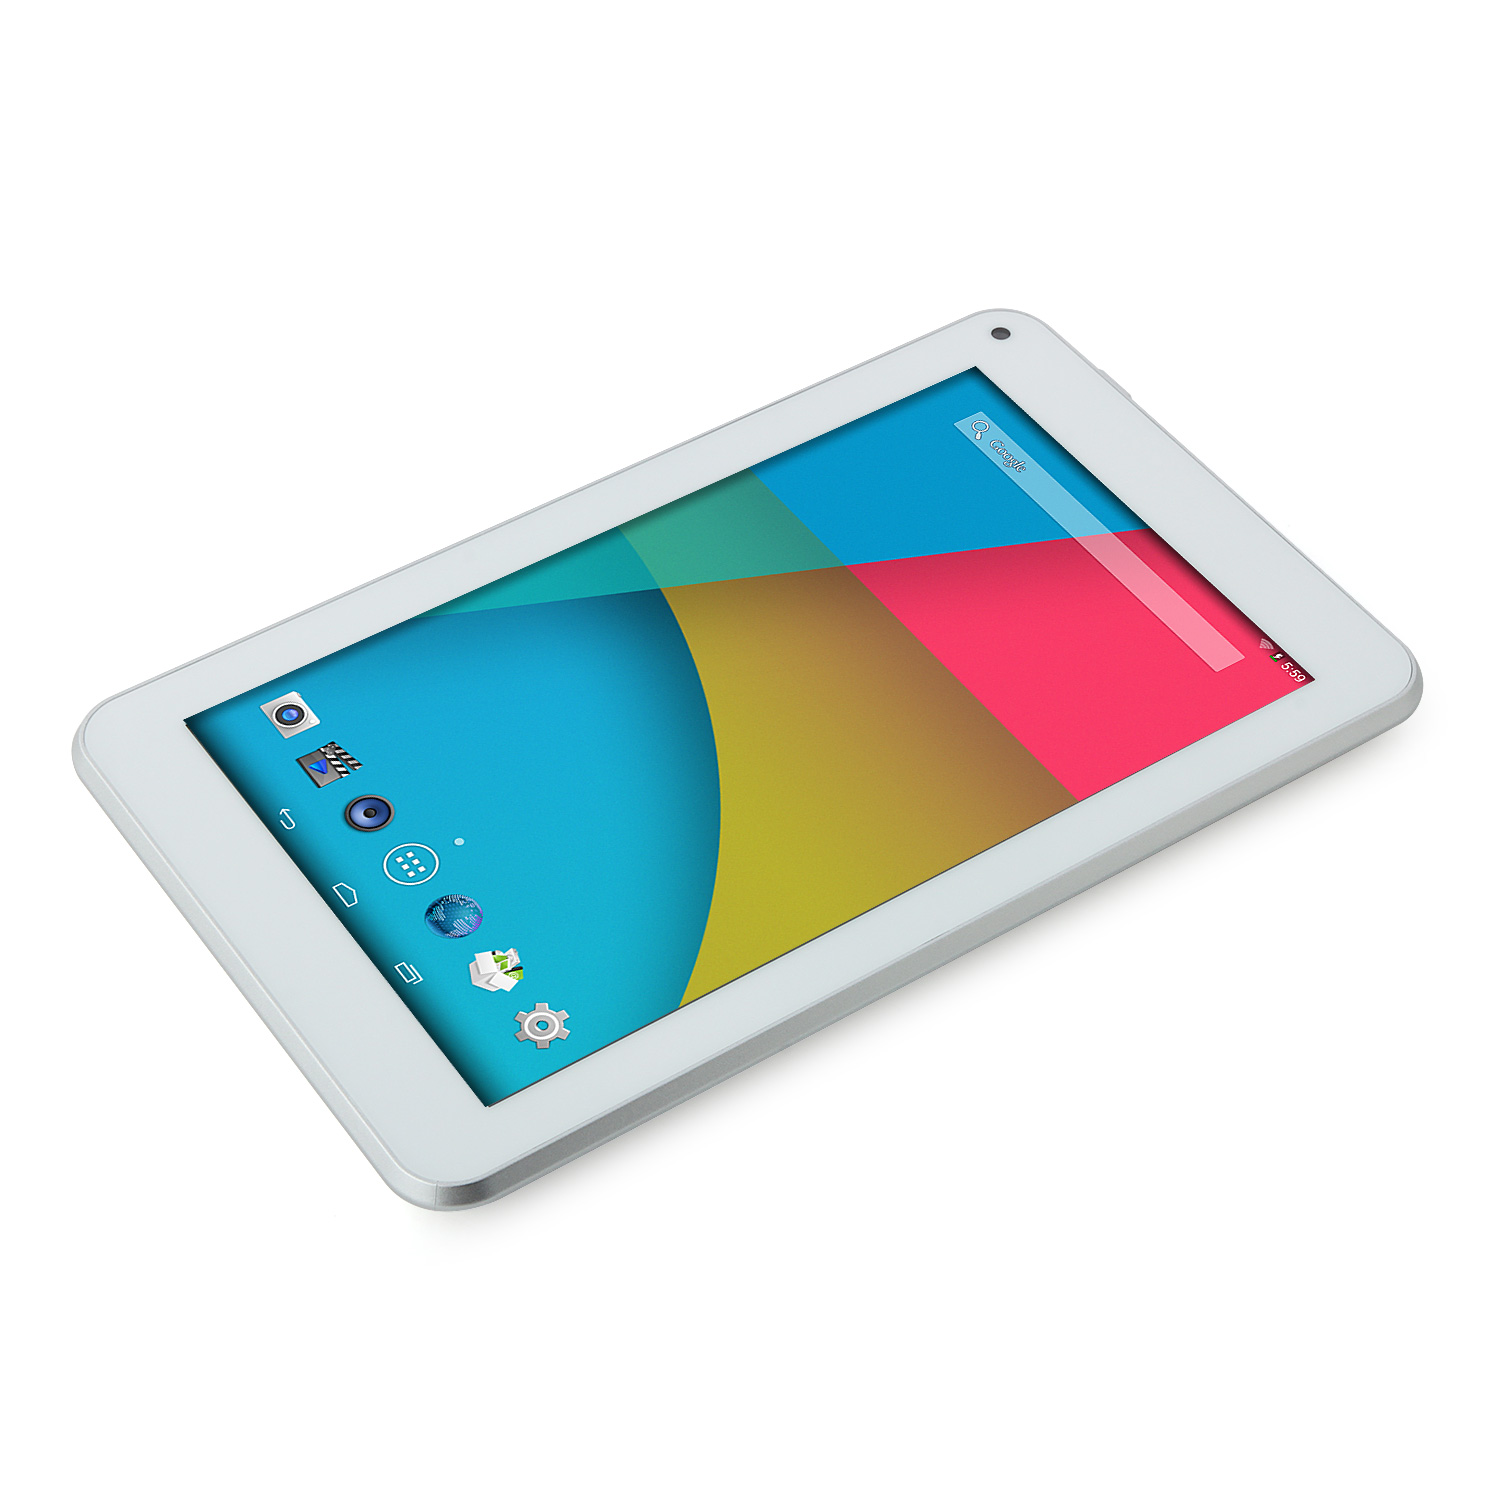 H701 Tablet PC RK3188 Quad Core 7.0 Inch Android 4.4 IPS Screen 4GB White